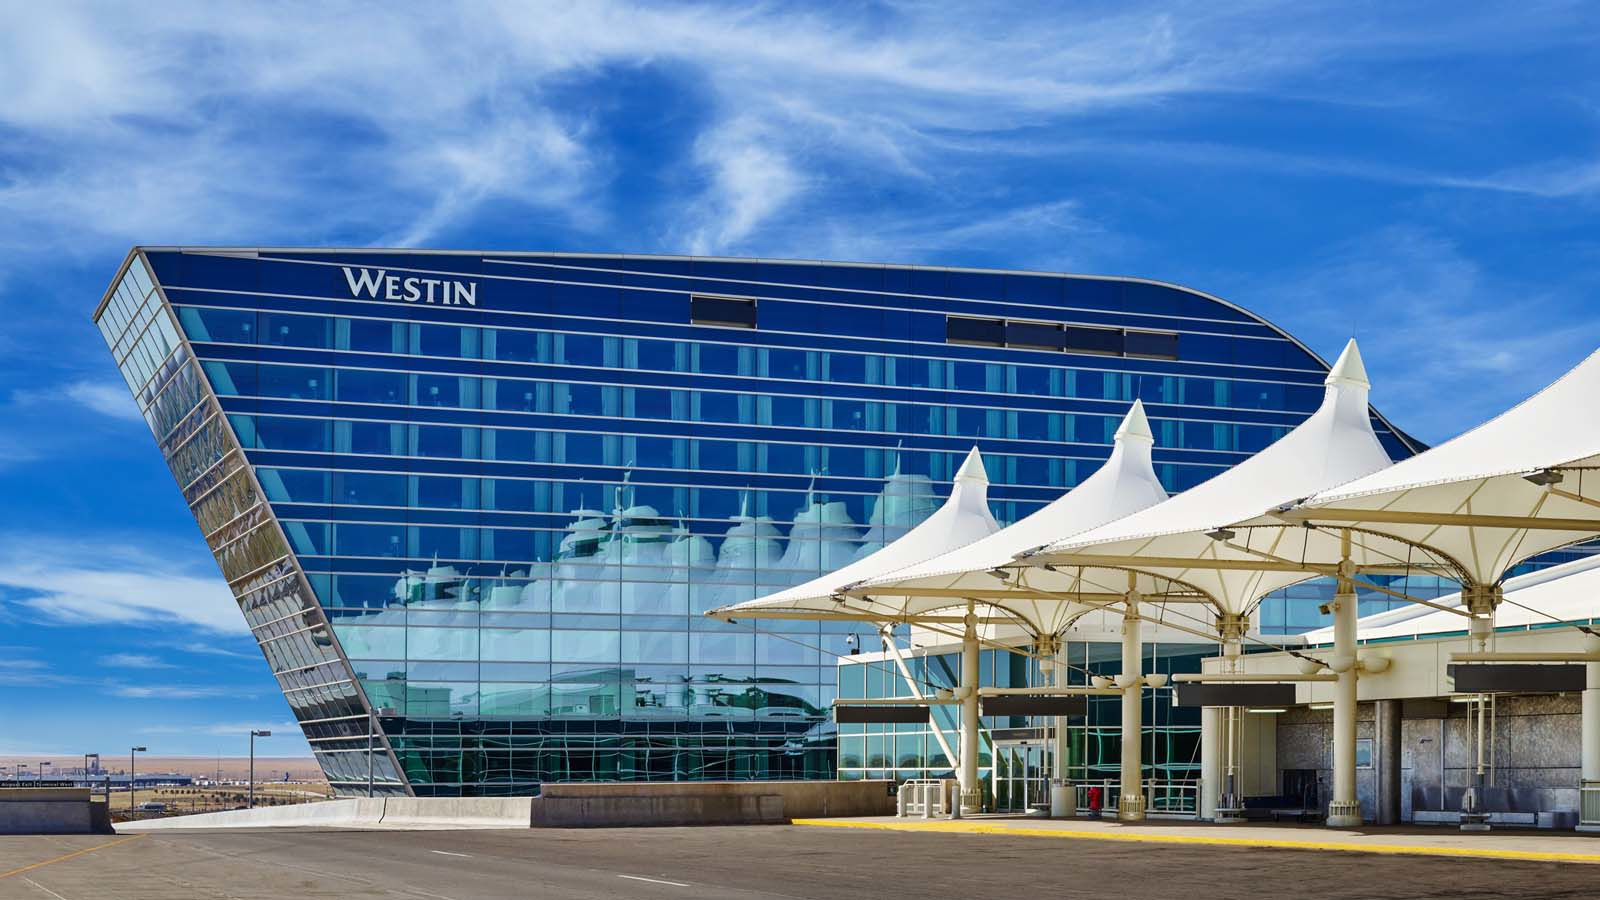 The Westin Denver International Airport - Outdoor Spaces